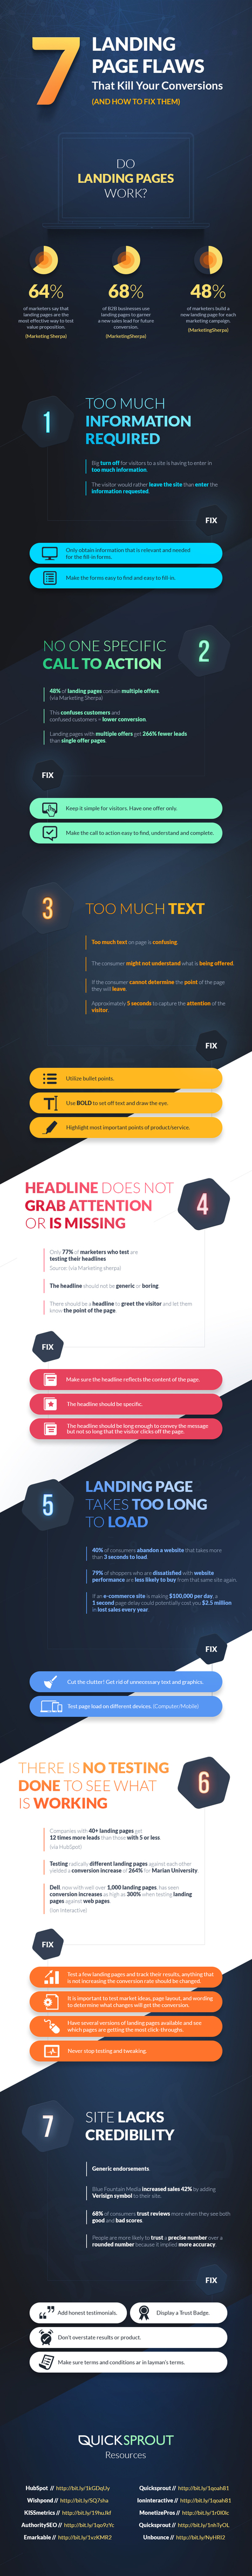 7 Landing Page Flaws That Kill Your Conversions (and How to Fix Them) [Infographic] | Référencement | Scoop.it